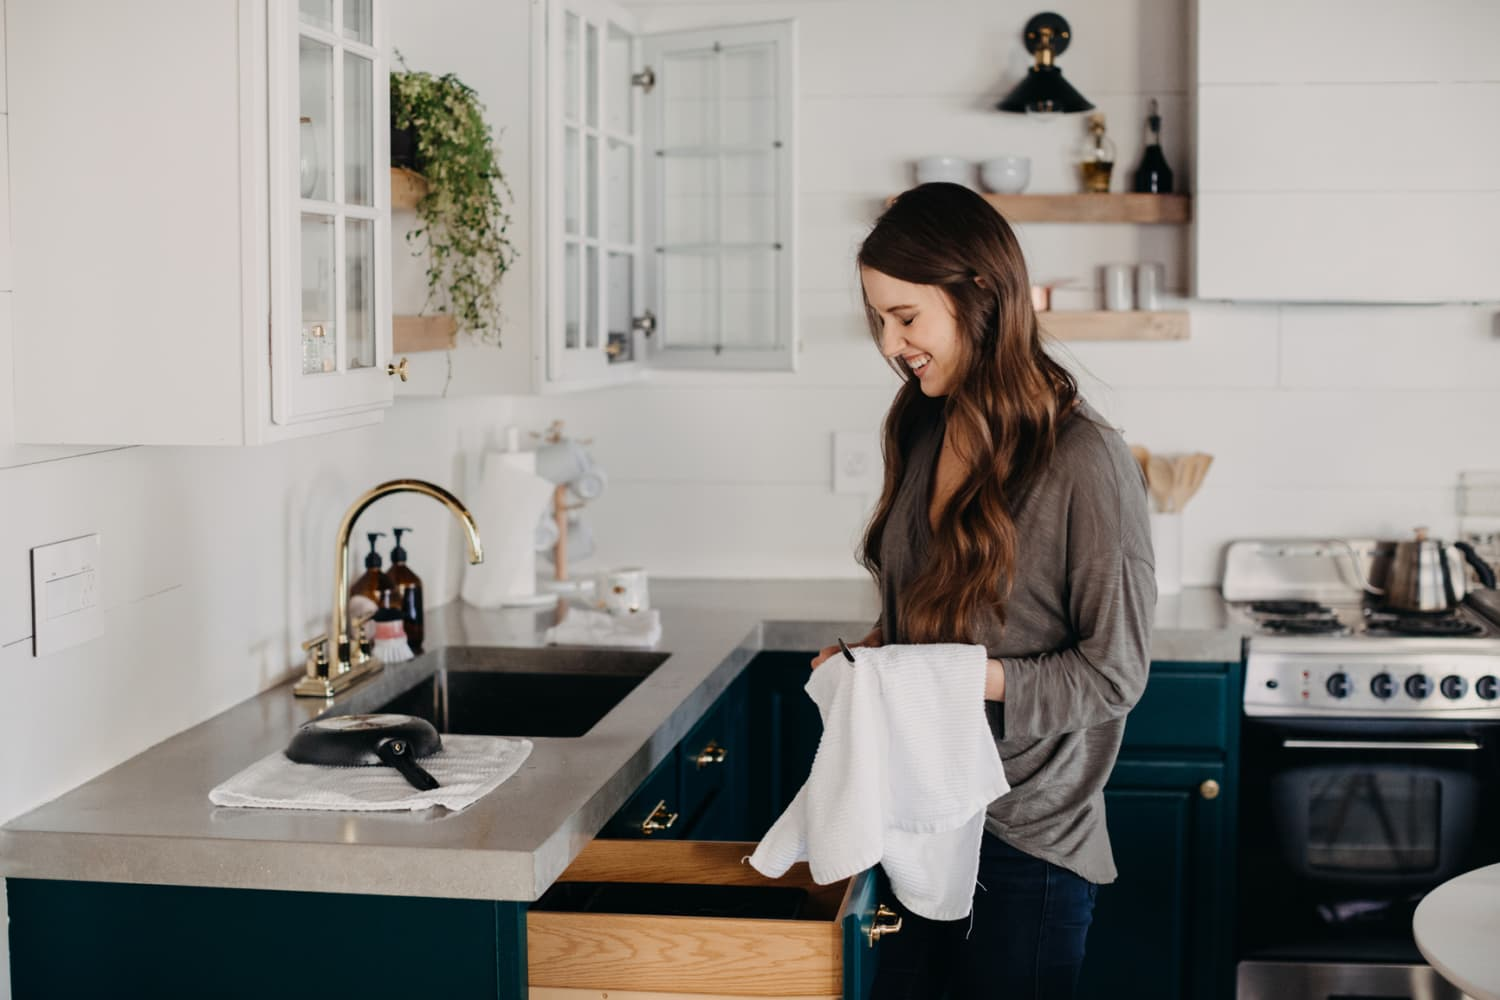 7 Things Professional House Cleaners Wish You'd Stop Doing ASAP